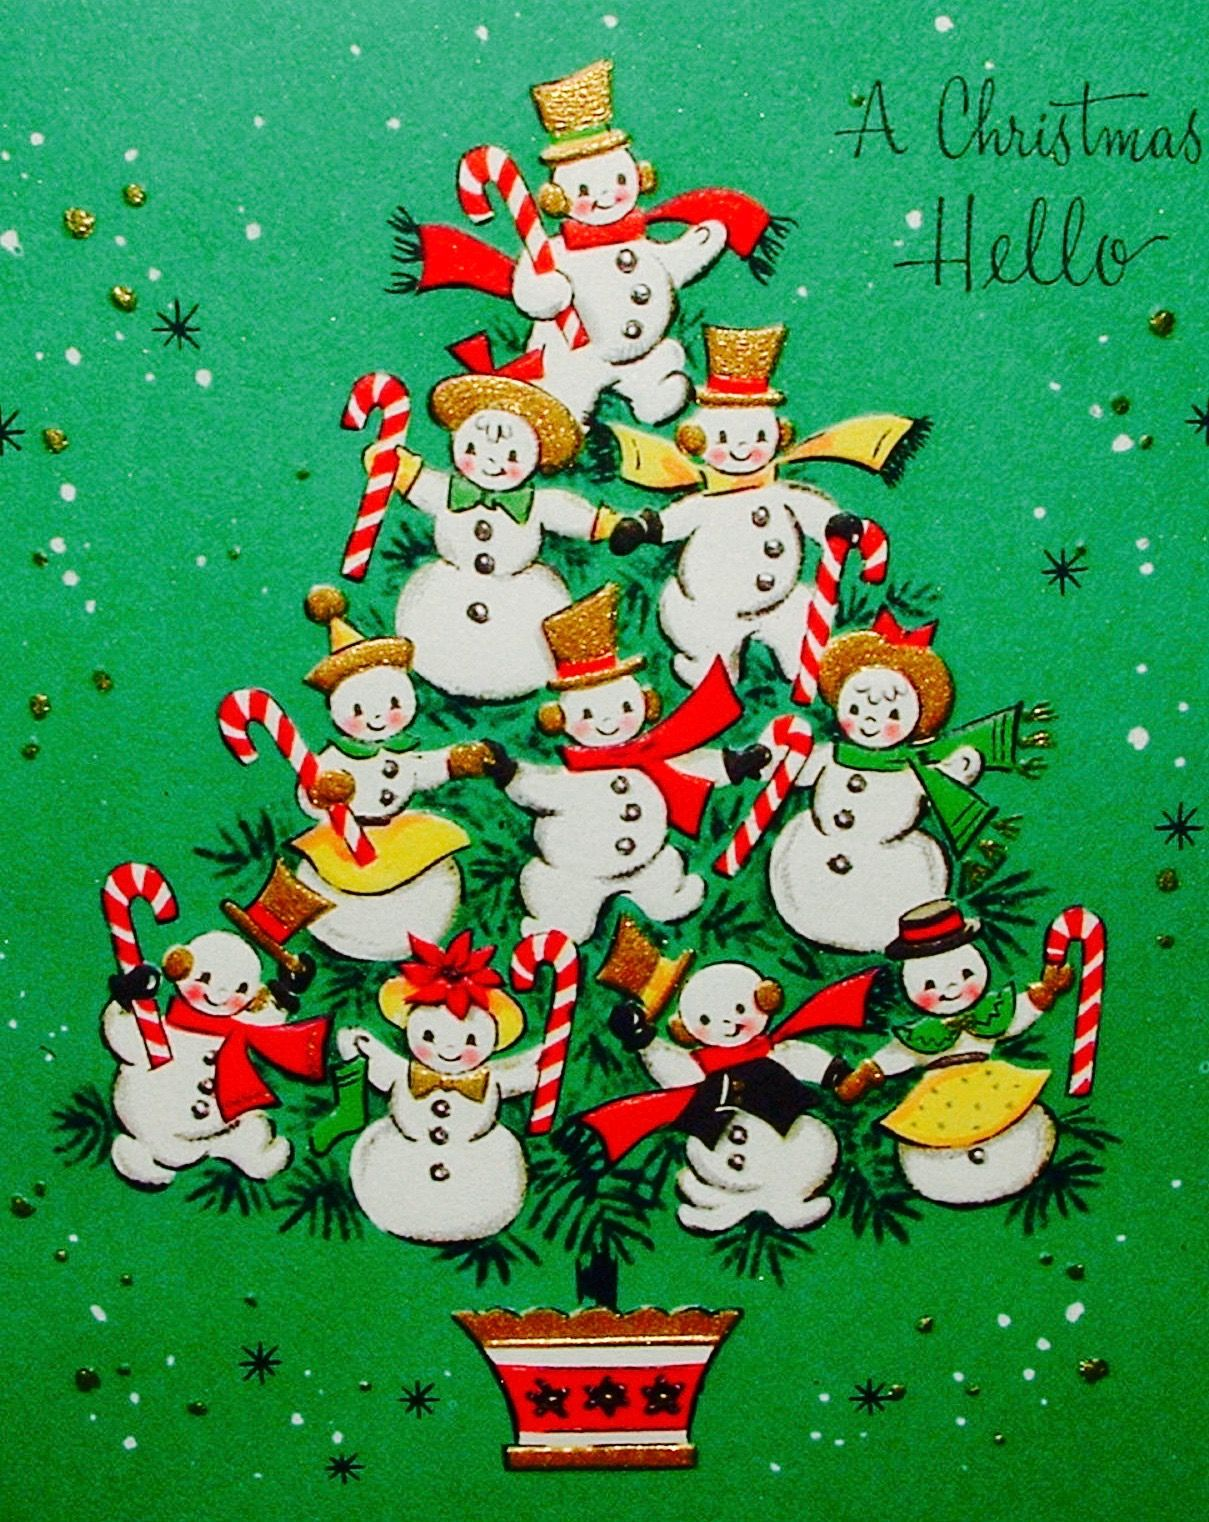 Vintage Christmas Card. Snowmen and Candy Canes. A Christmas Hello.